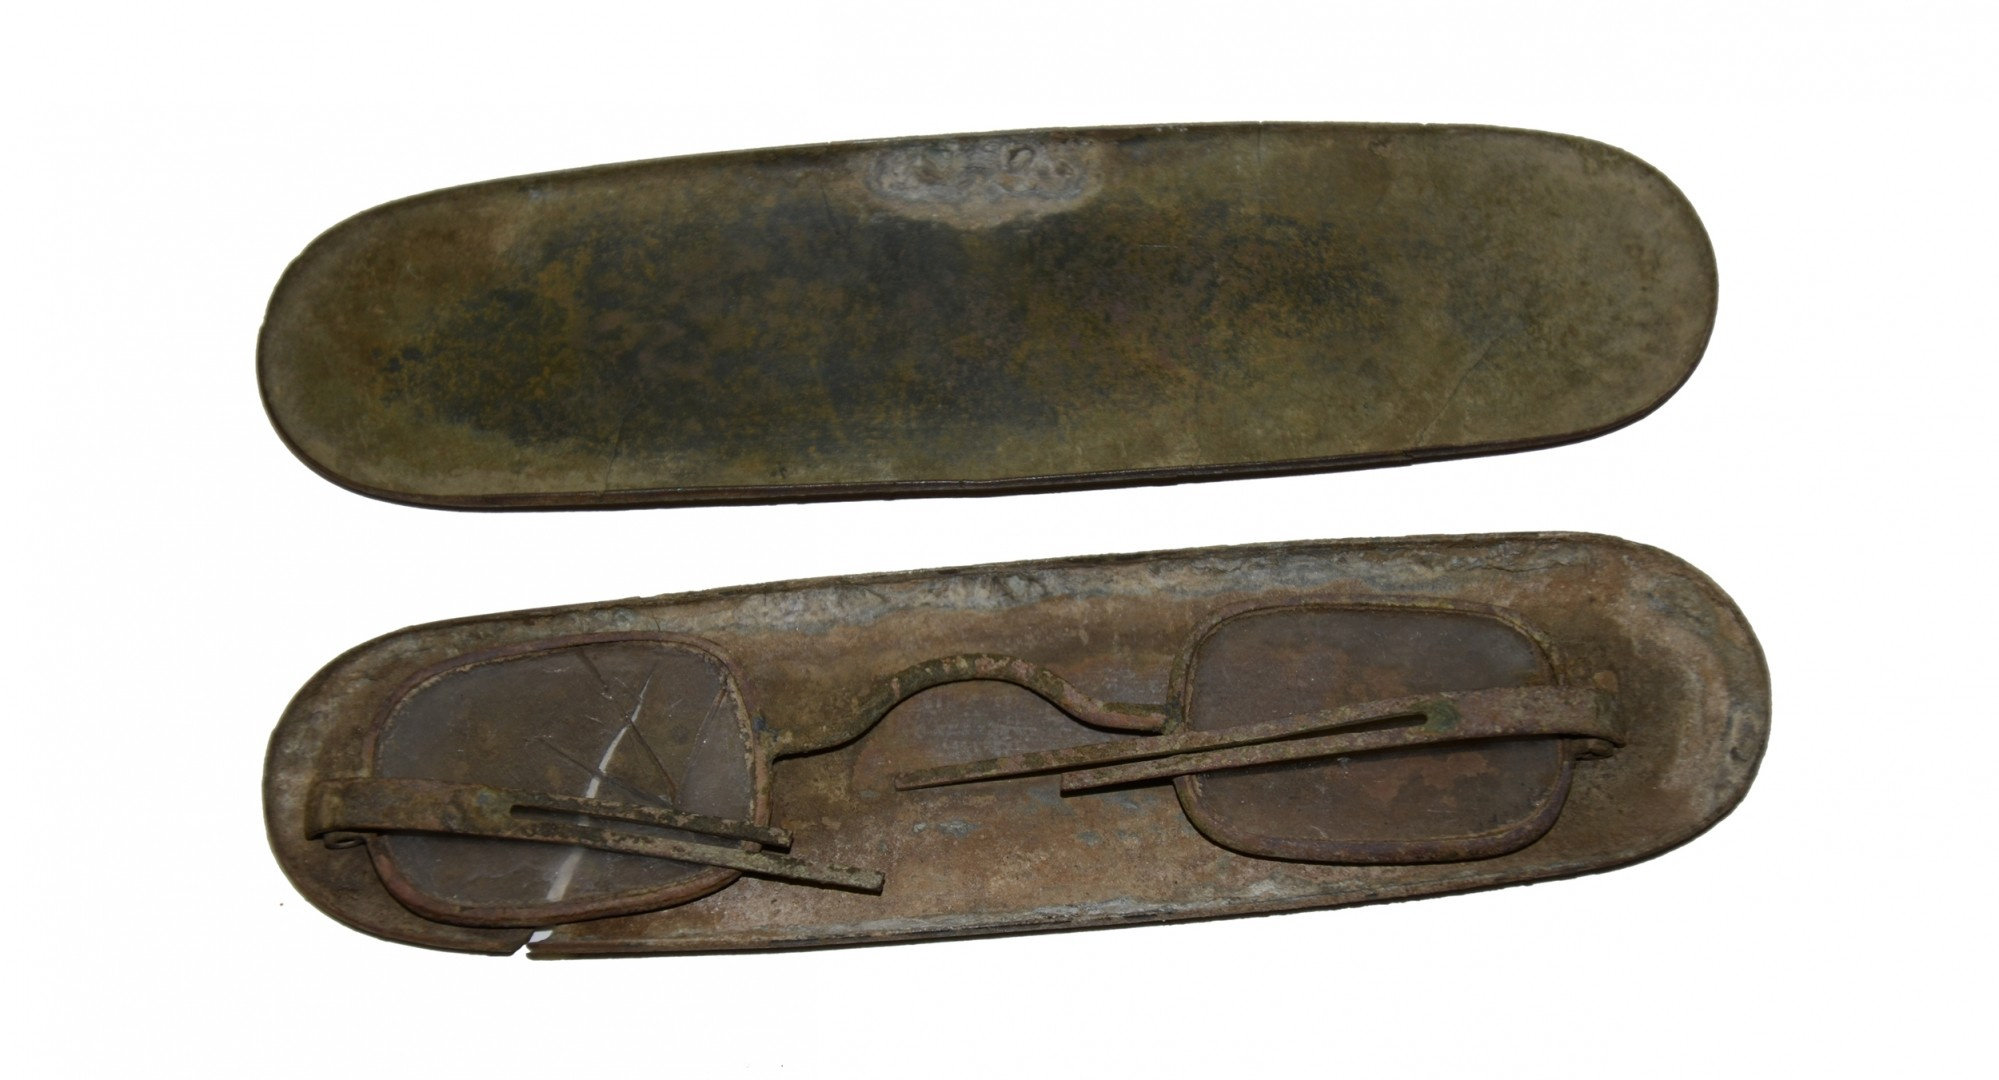 PAIR OF EYE GLASSES IN THE ORIGINAL CASE DUG IN REB TRENCH AT SPOTSYLVANIA - GAVIN COLLECTION